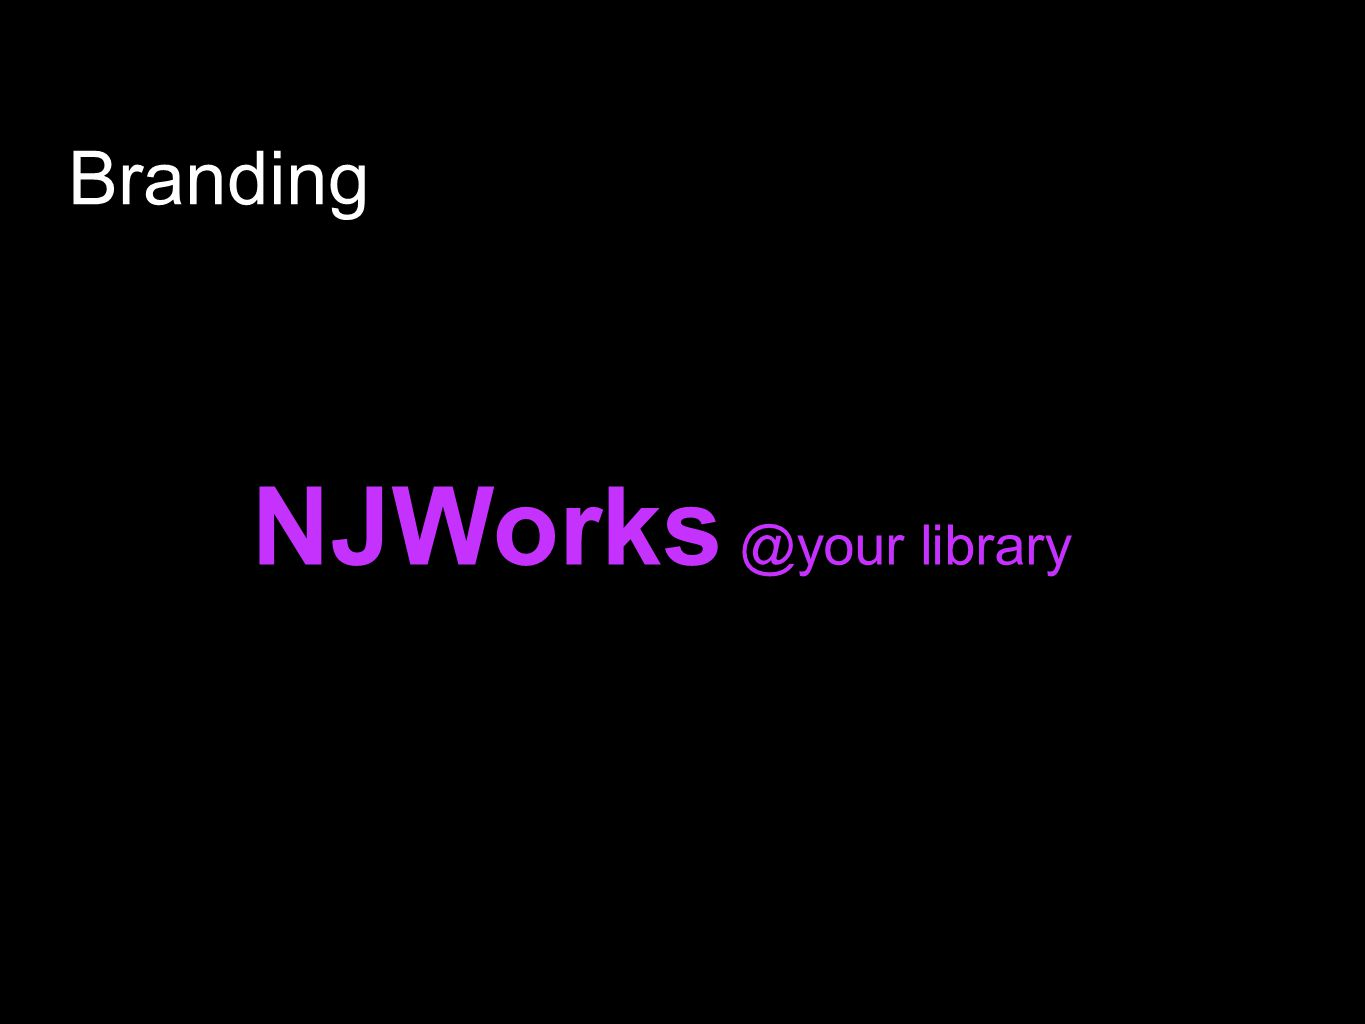 NJWorks @your library Branding